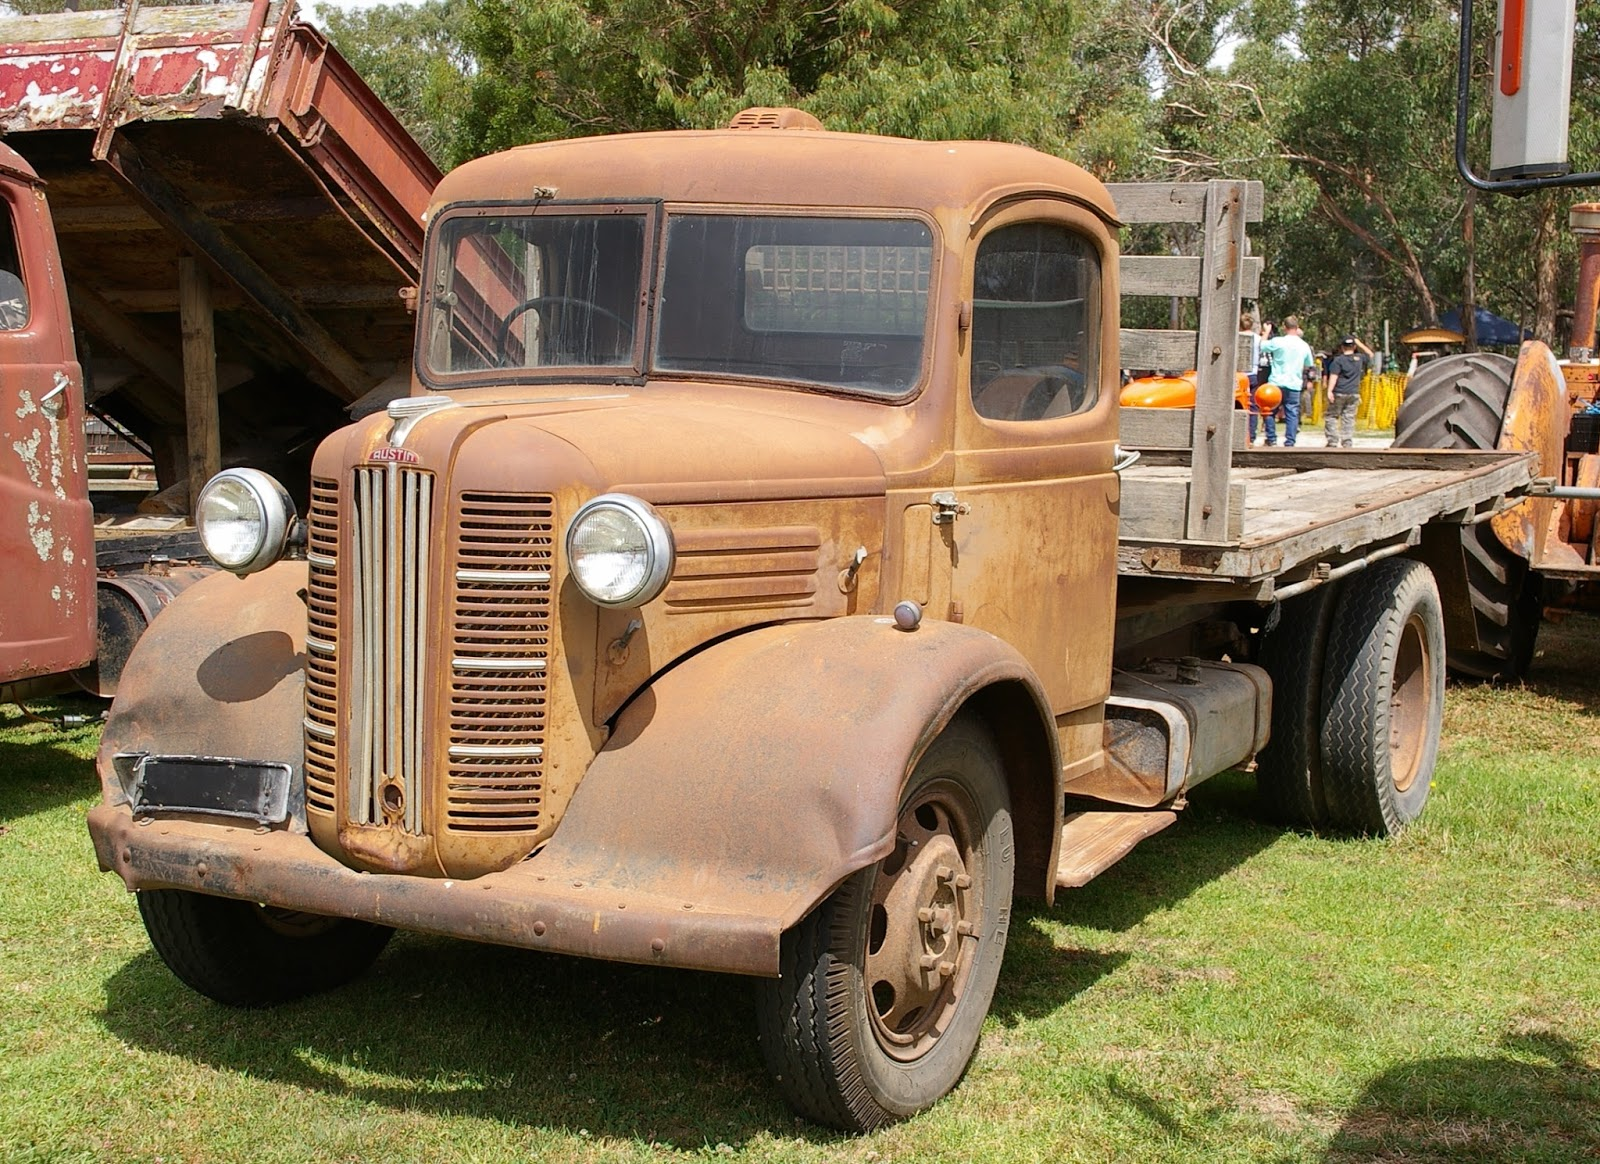 Historic Trucks: Longwarry Truck Show 2015: Part 3 - English and ...